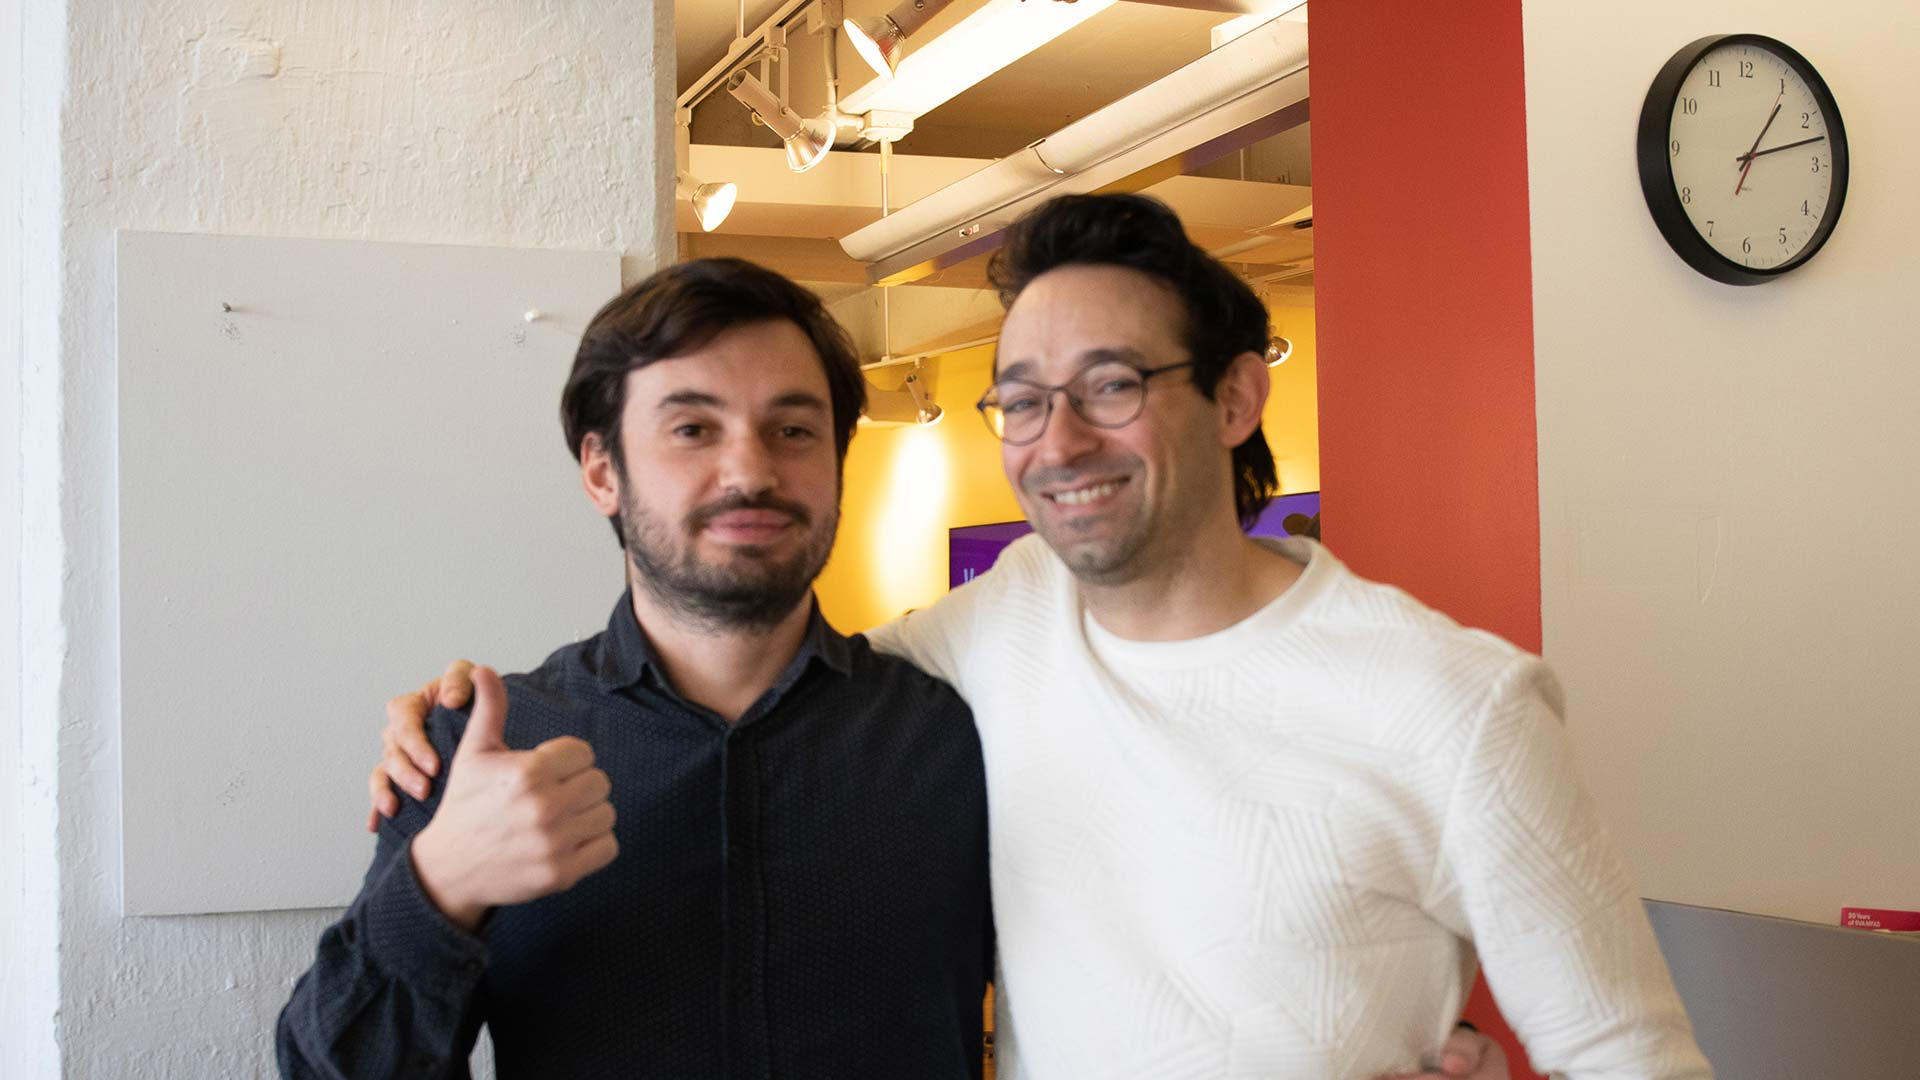 photo of two man with thumbs up